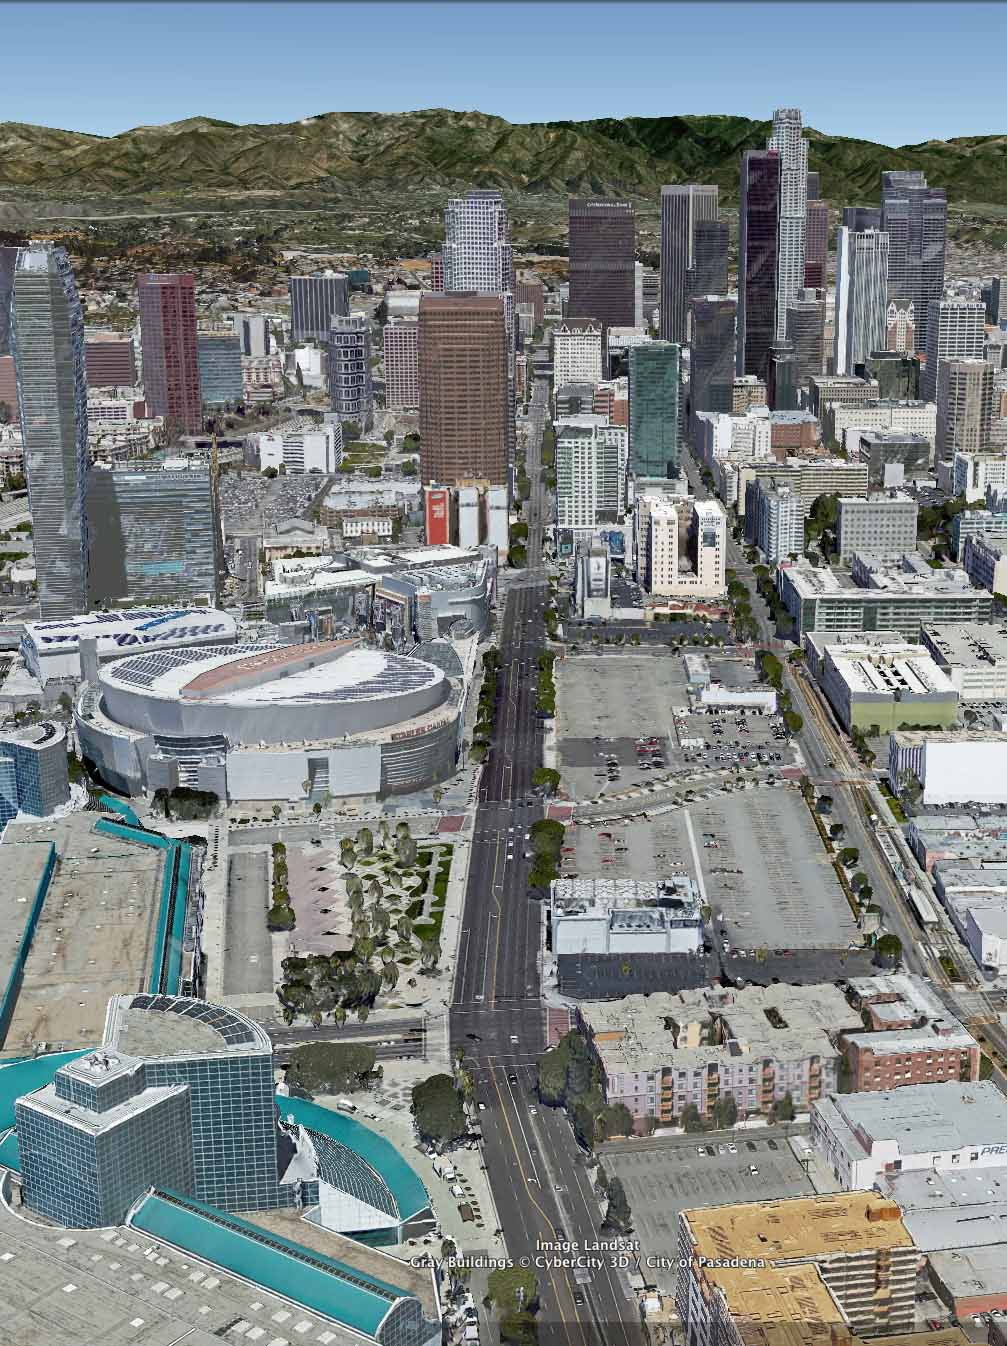 Fig. 6.2: A  ctual development and Staples Center